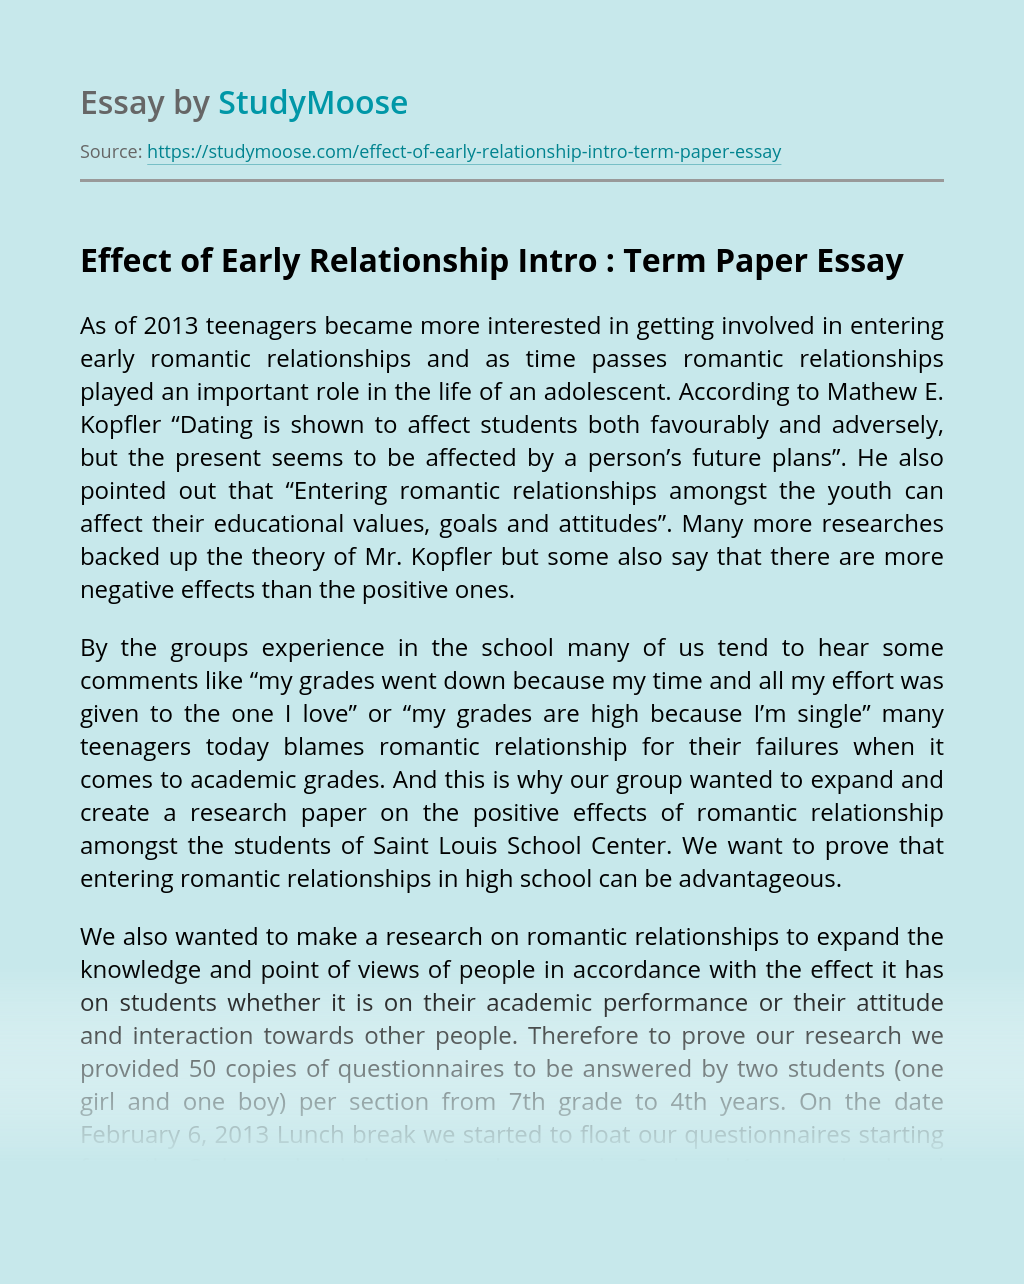 Effect of Early Relationship Intro : Term Paper